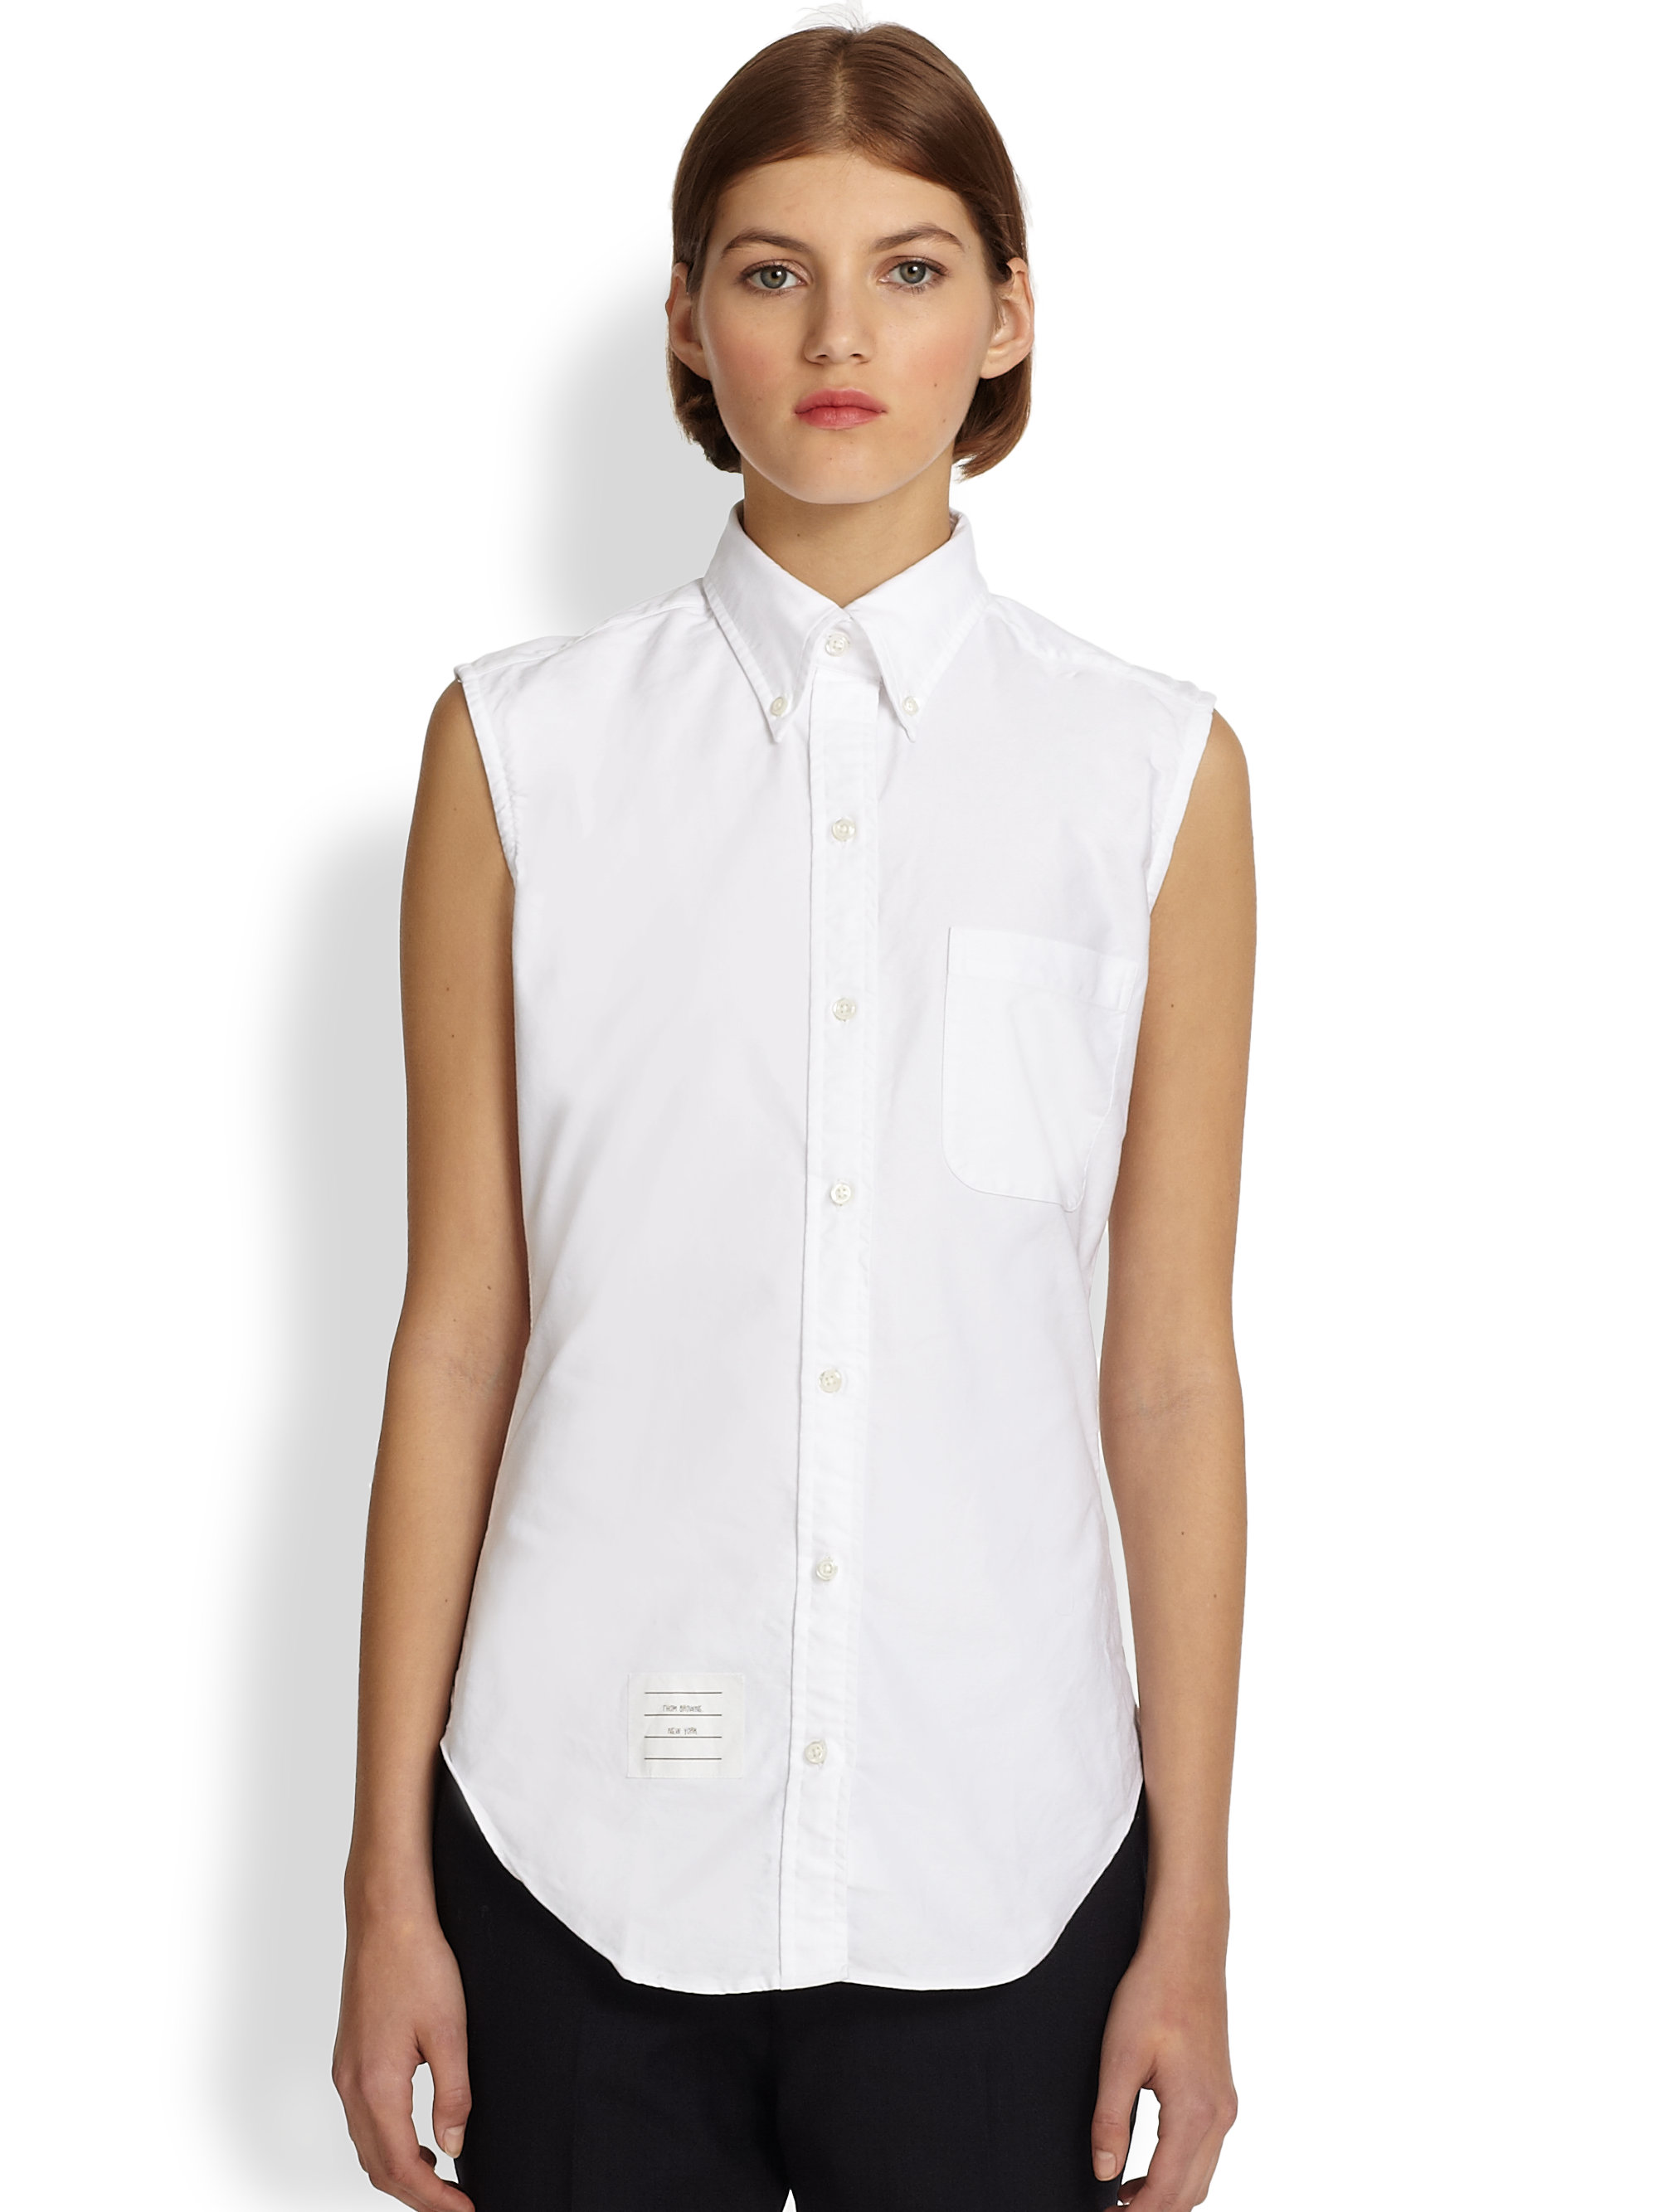 Thom browne Sleeveless Oxford Shirt in White | Lyst